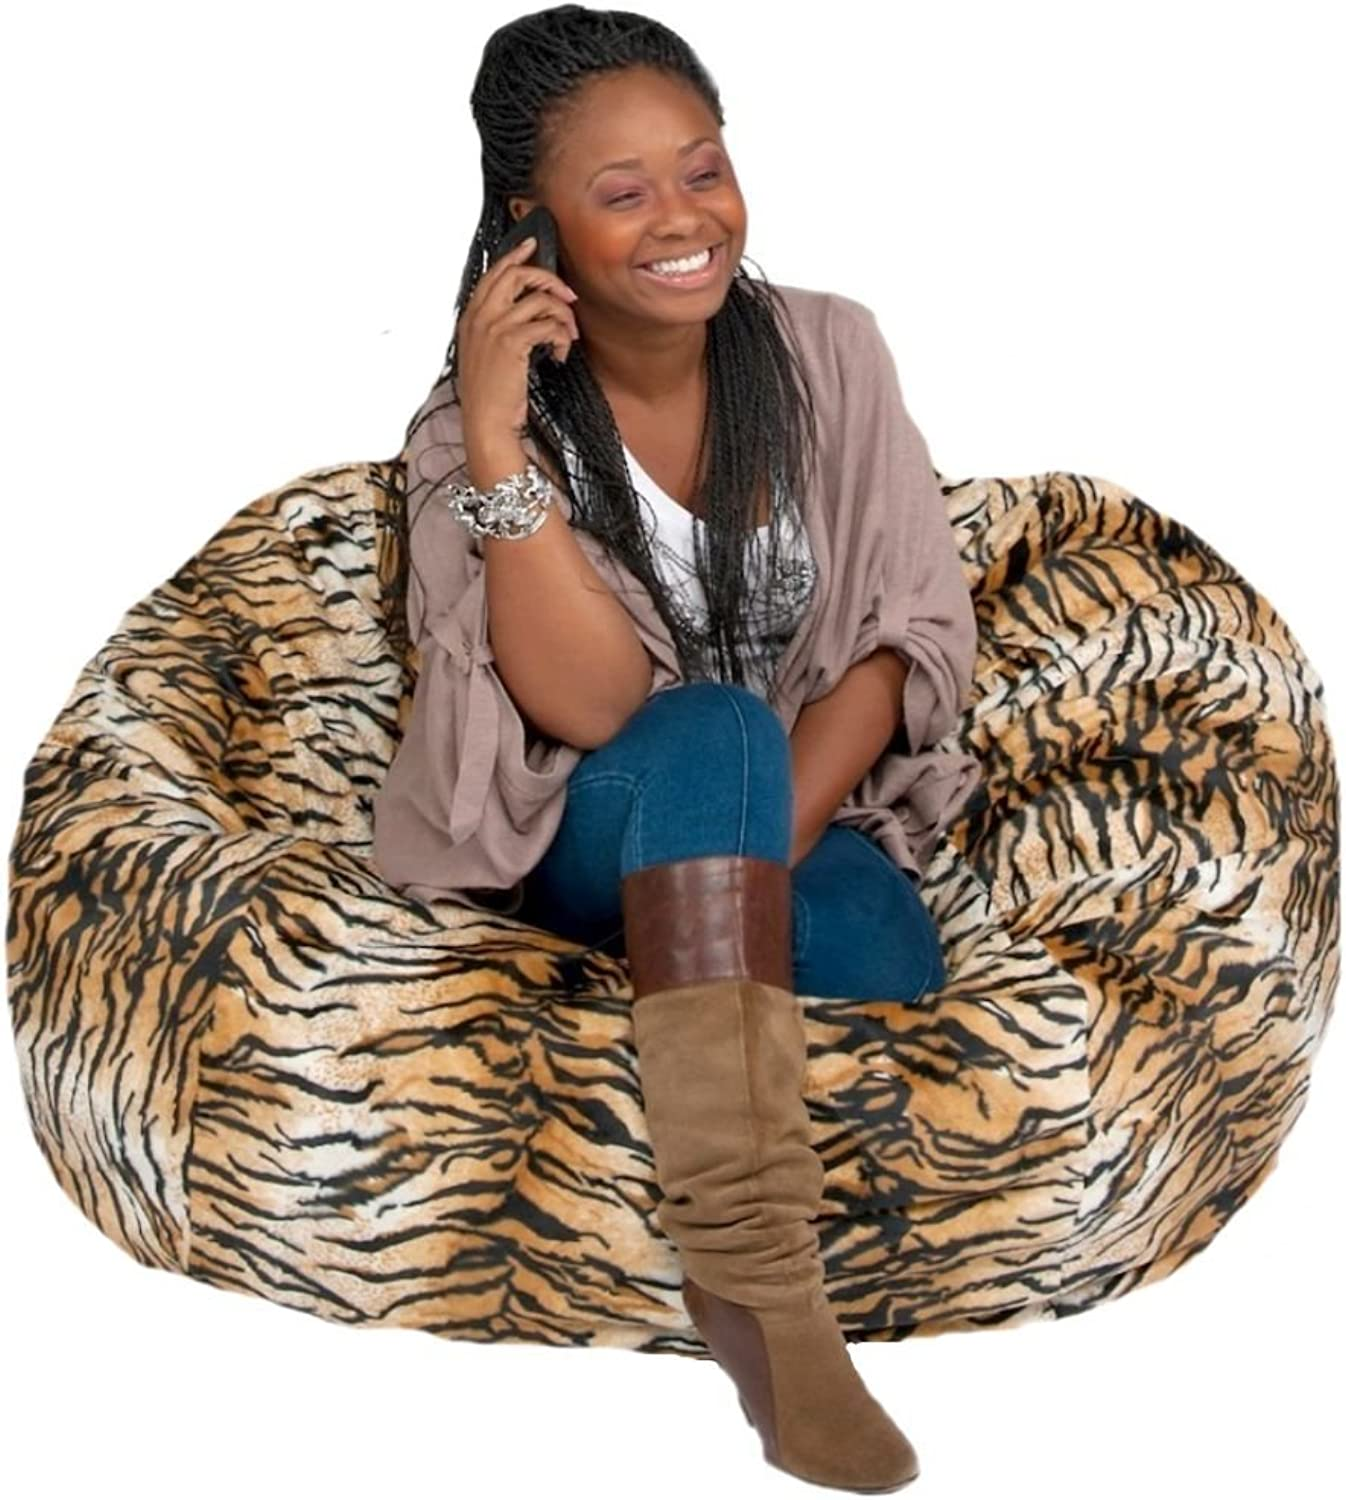 Cozy Sack Bean Bag Chair  Large 4 Foot Foam Filled Bean Bag – Large Bean Bag Chair, Predective Liner, Plush Micro Fiber Removable Cover - Tiger